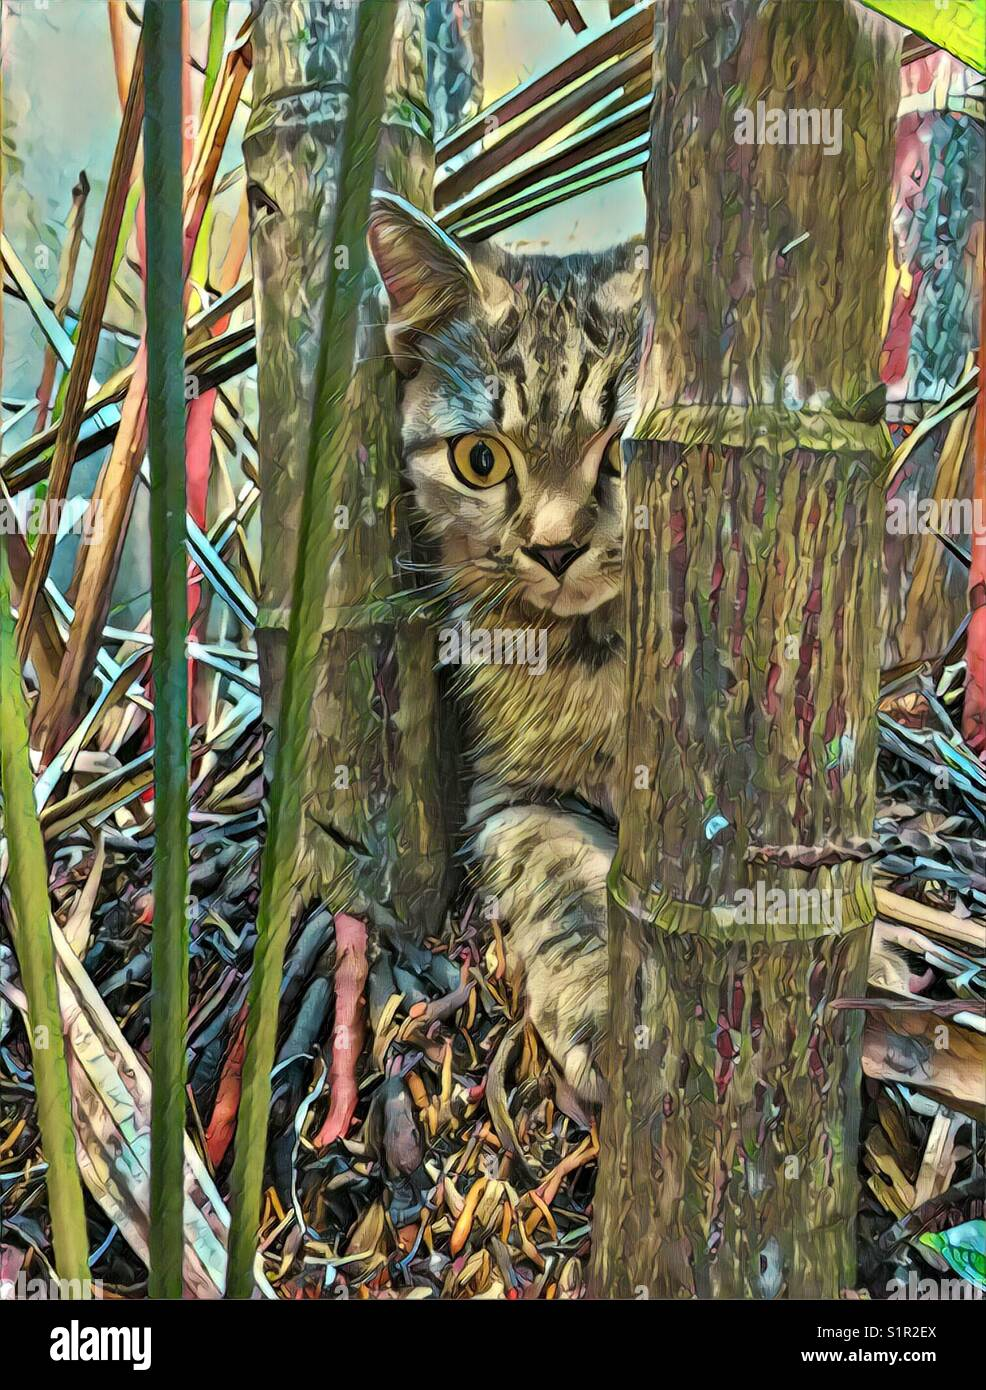 My cat hide in bush watching me, took a snap and edited it - Stock Image